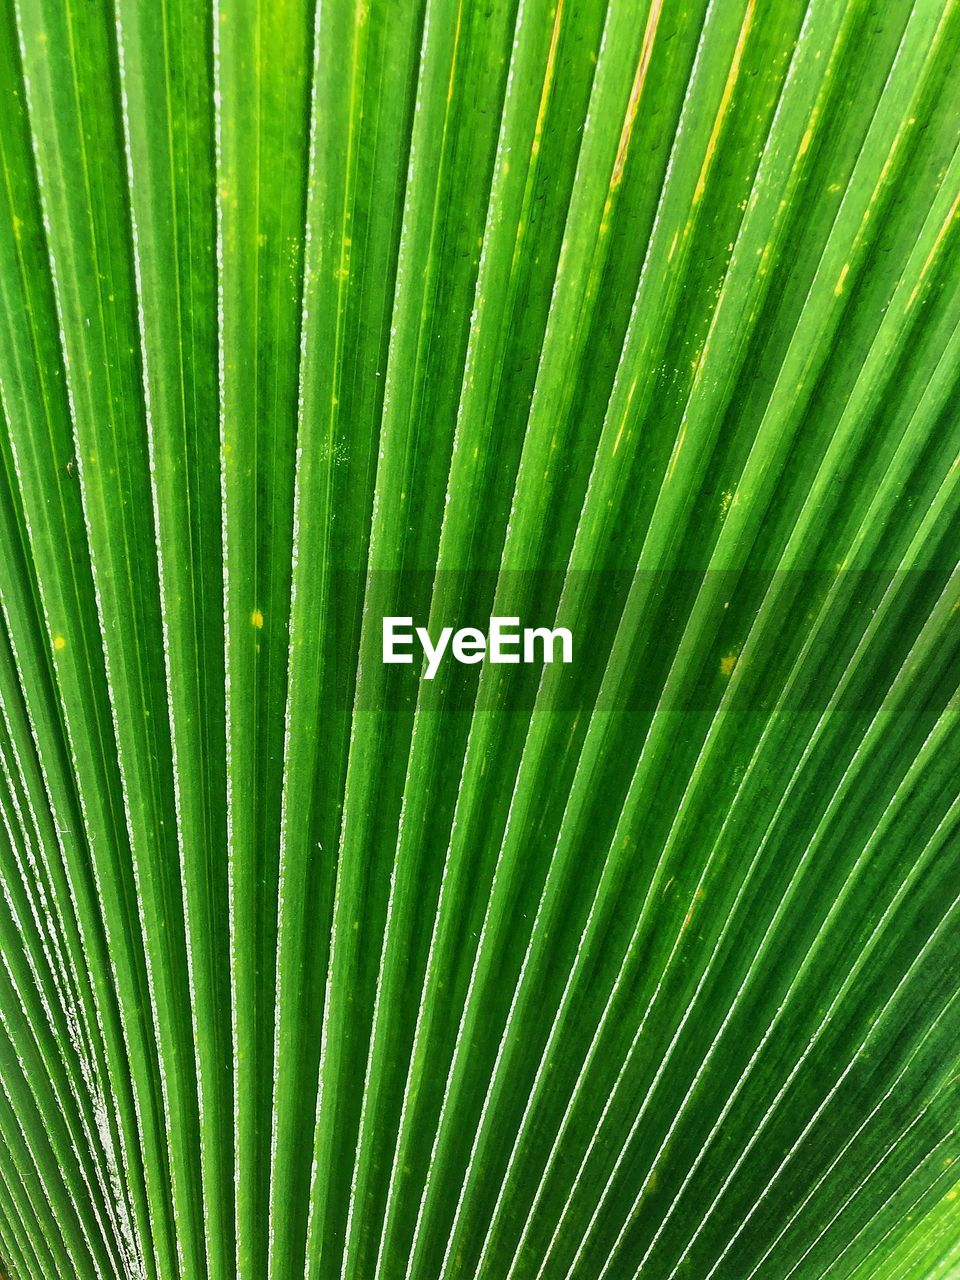 green color, palm tree, full frame, pattern, leaf, backgrounds, tropical climate, palm leaf, growth, plant, no people, close-up, natural pattern, nature, beauty in nature, plant part, textured, tree, frond, botany, outdoors, abstract, abstract backgrounds, rainforest